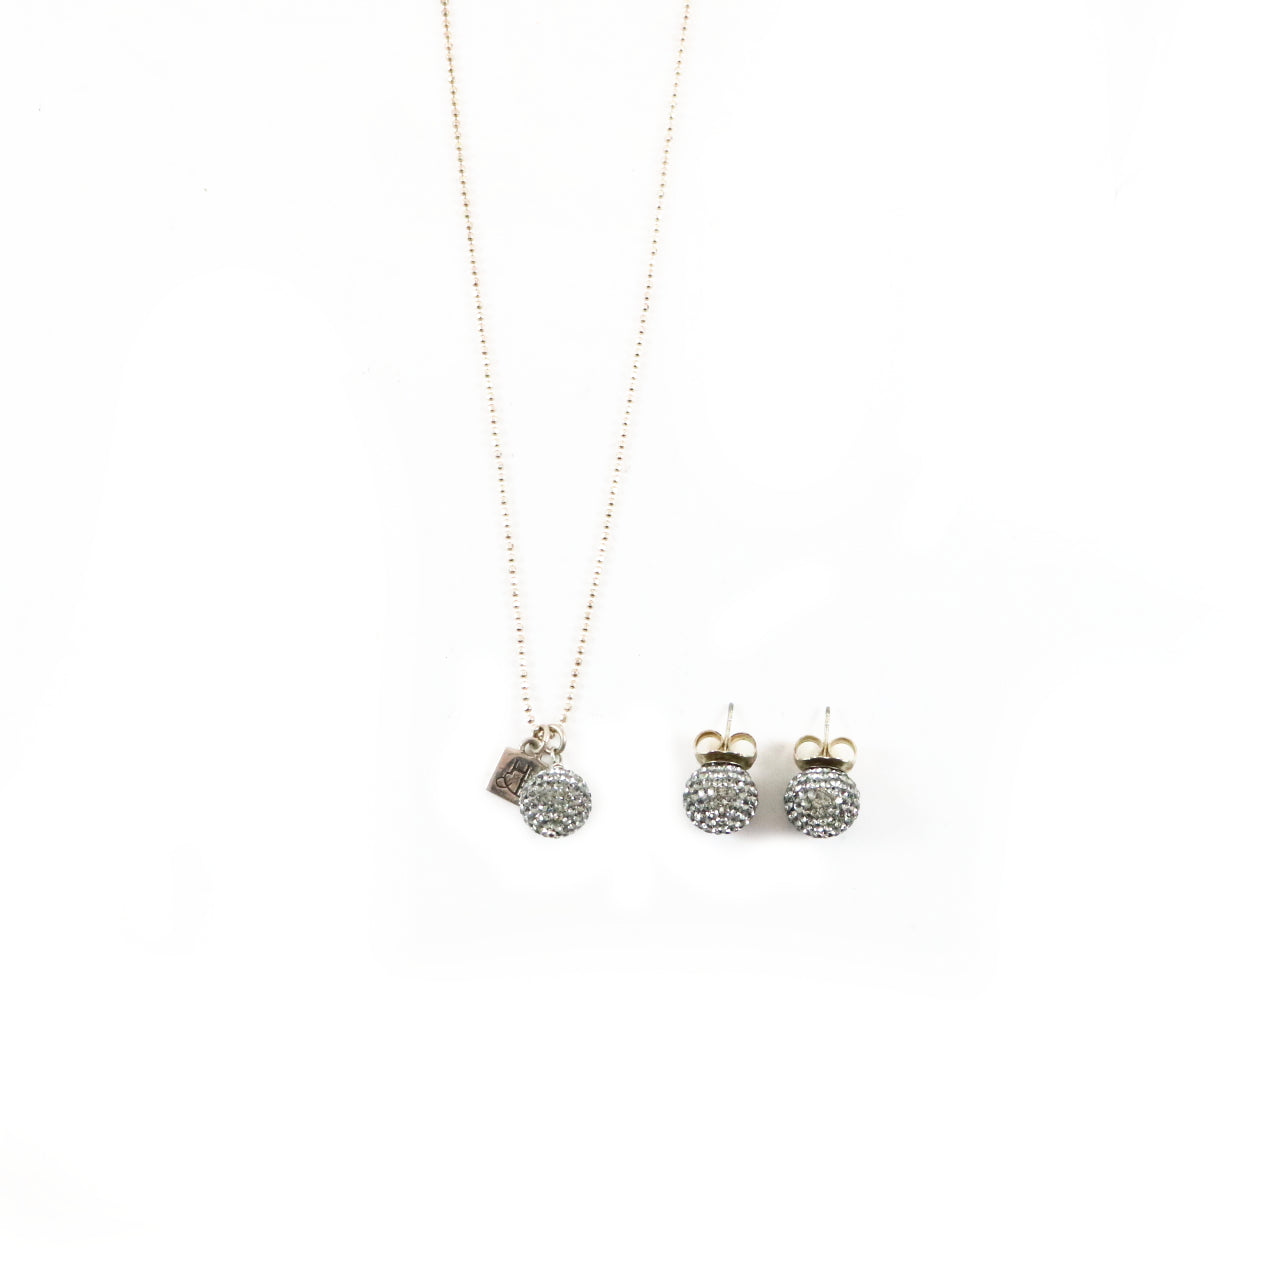 12mm Grey Sparkle Set Earrings & Necklace